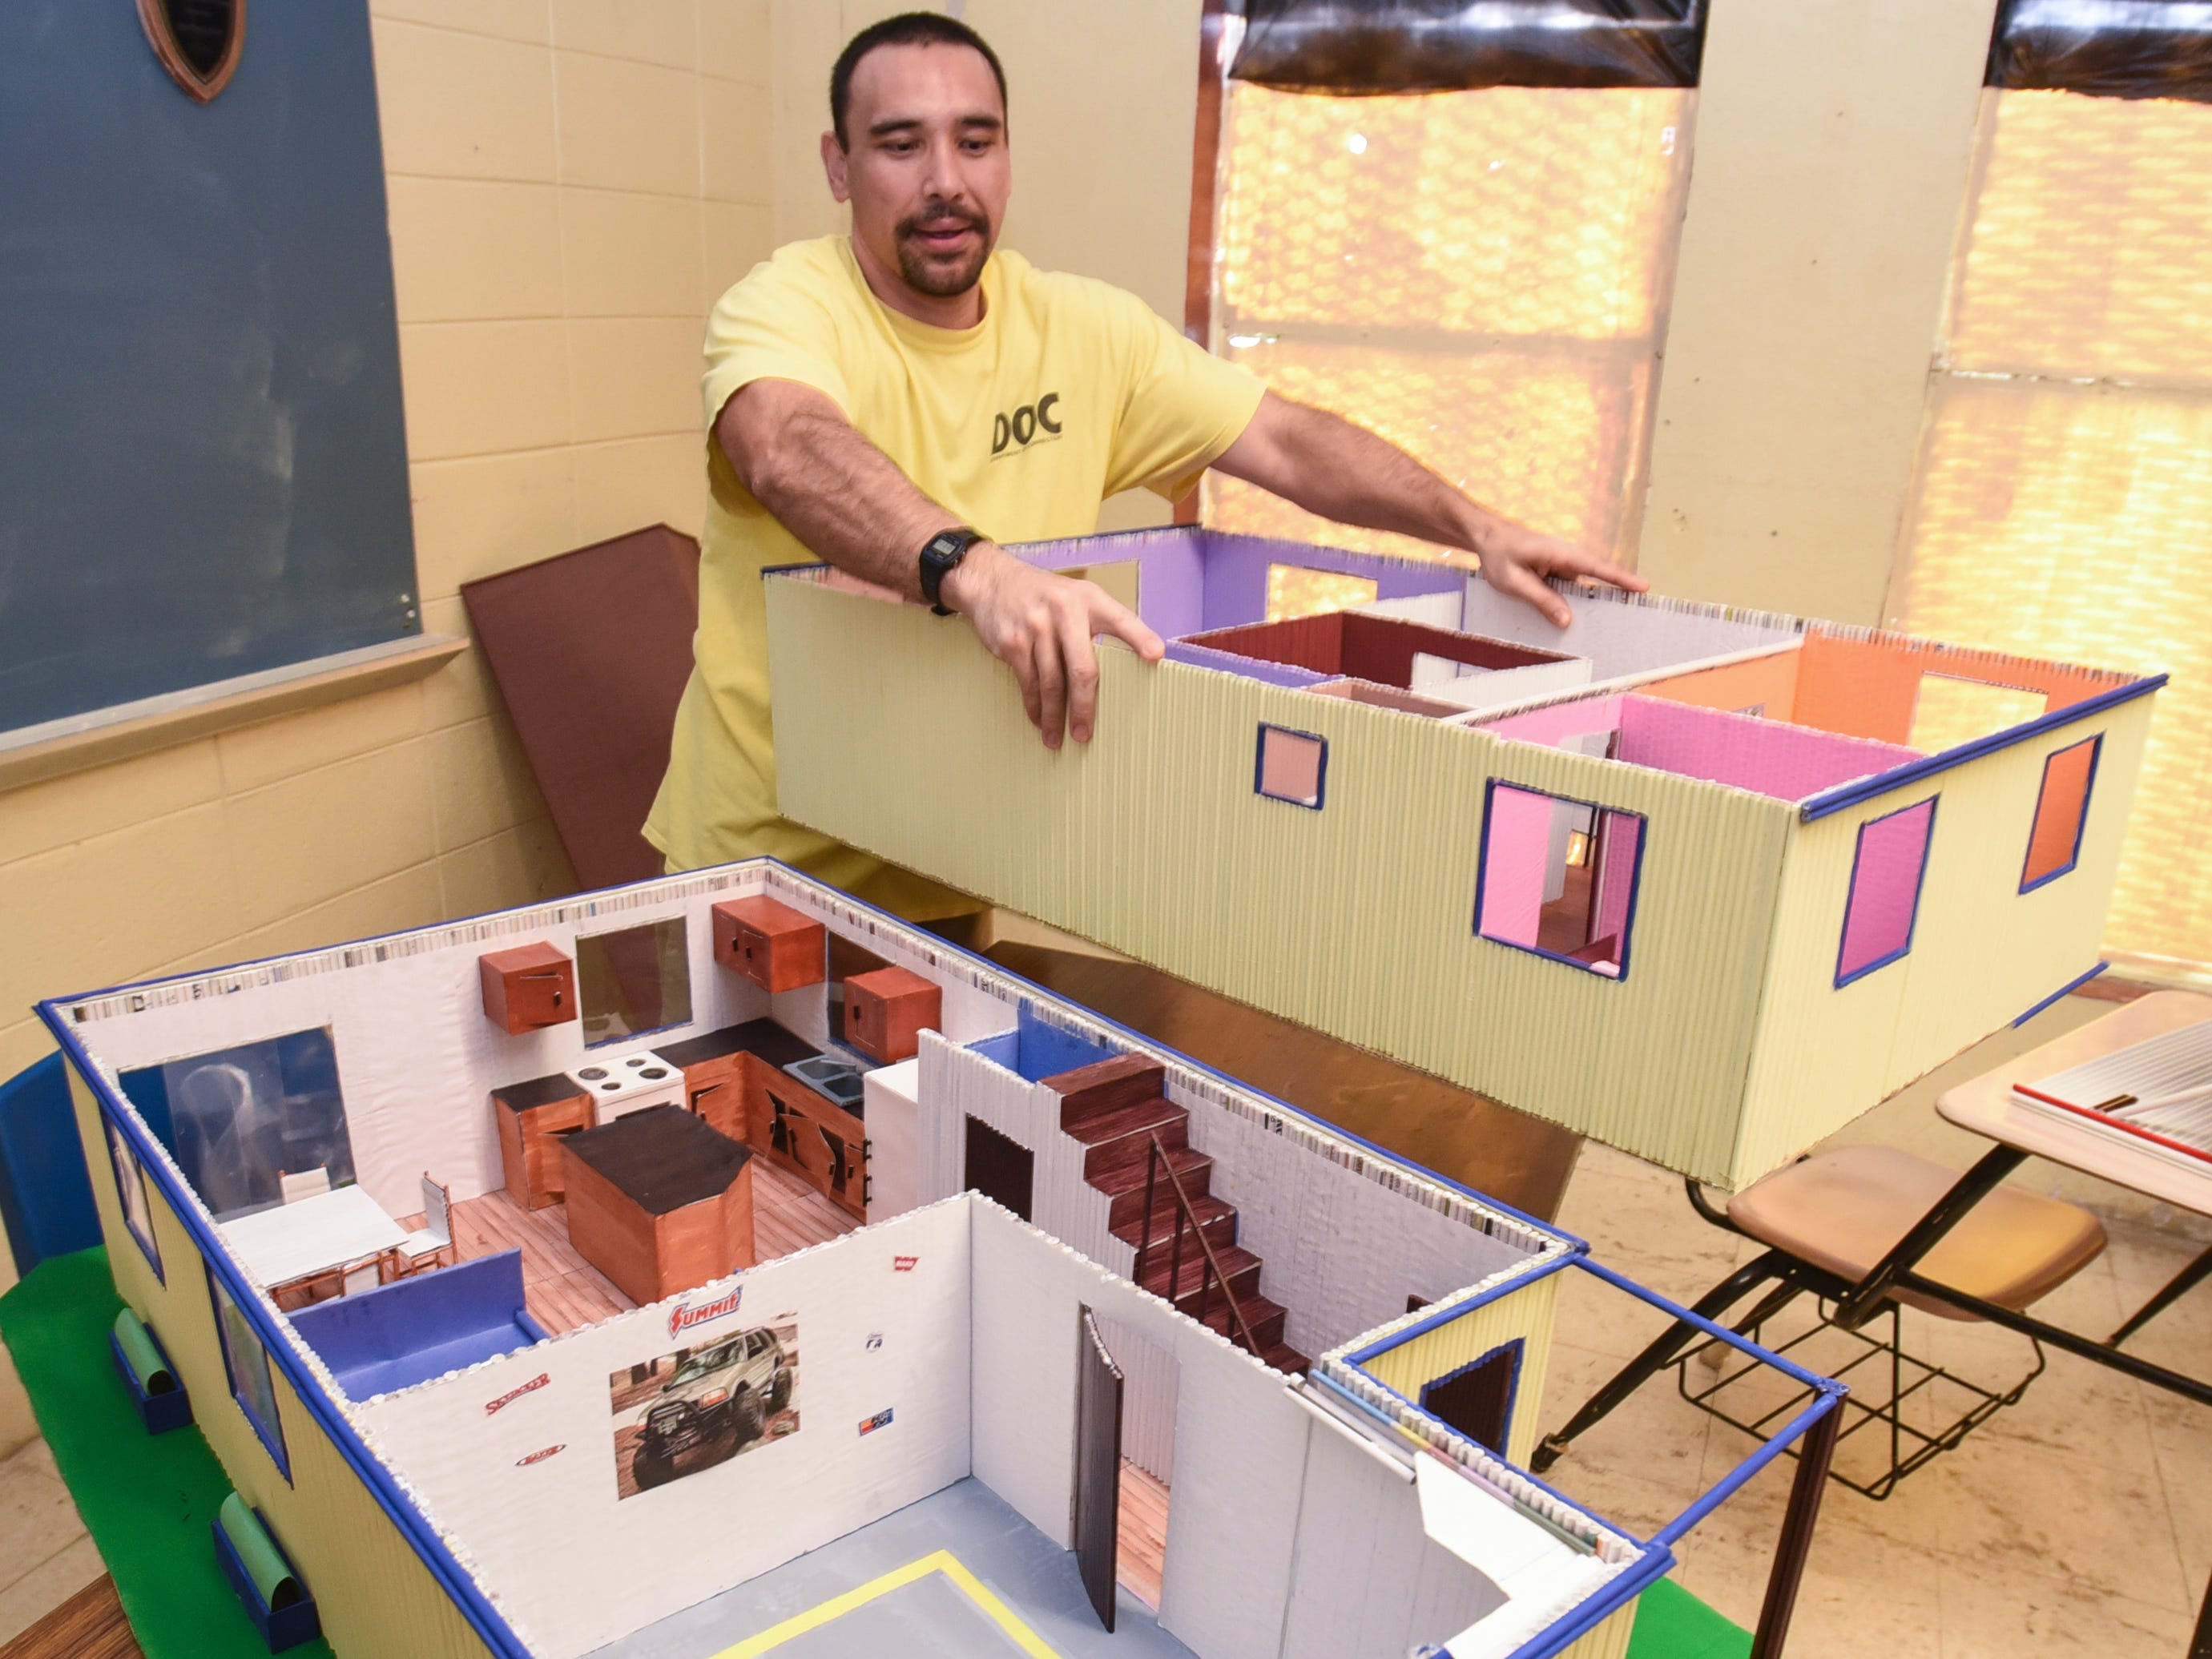 Department of Corrections inmate, Roy Pablo, separates the floors of his model two-story home to reveal it's interior layout and decor during a media event at the correctional facility in Mangilao on Tuesday, Dec. 4, 2018. The model and most of it's contents is constructed of tightly rolled newspaper material and built-to-scale model, along with some glue and paint, said Pablo.